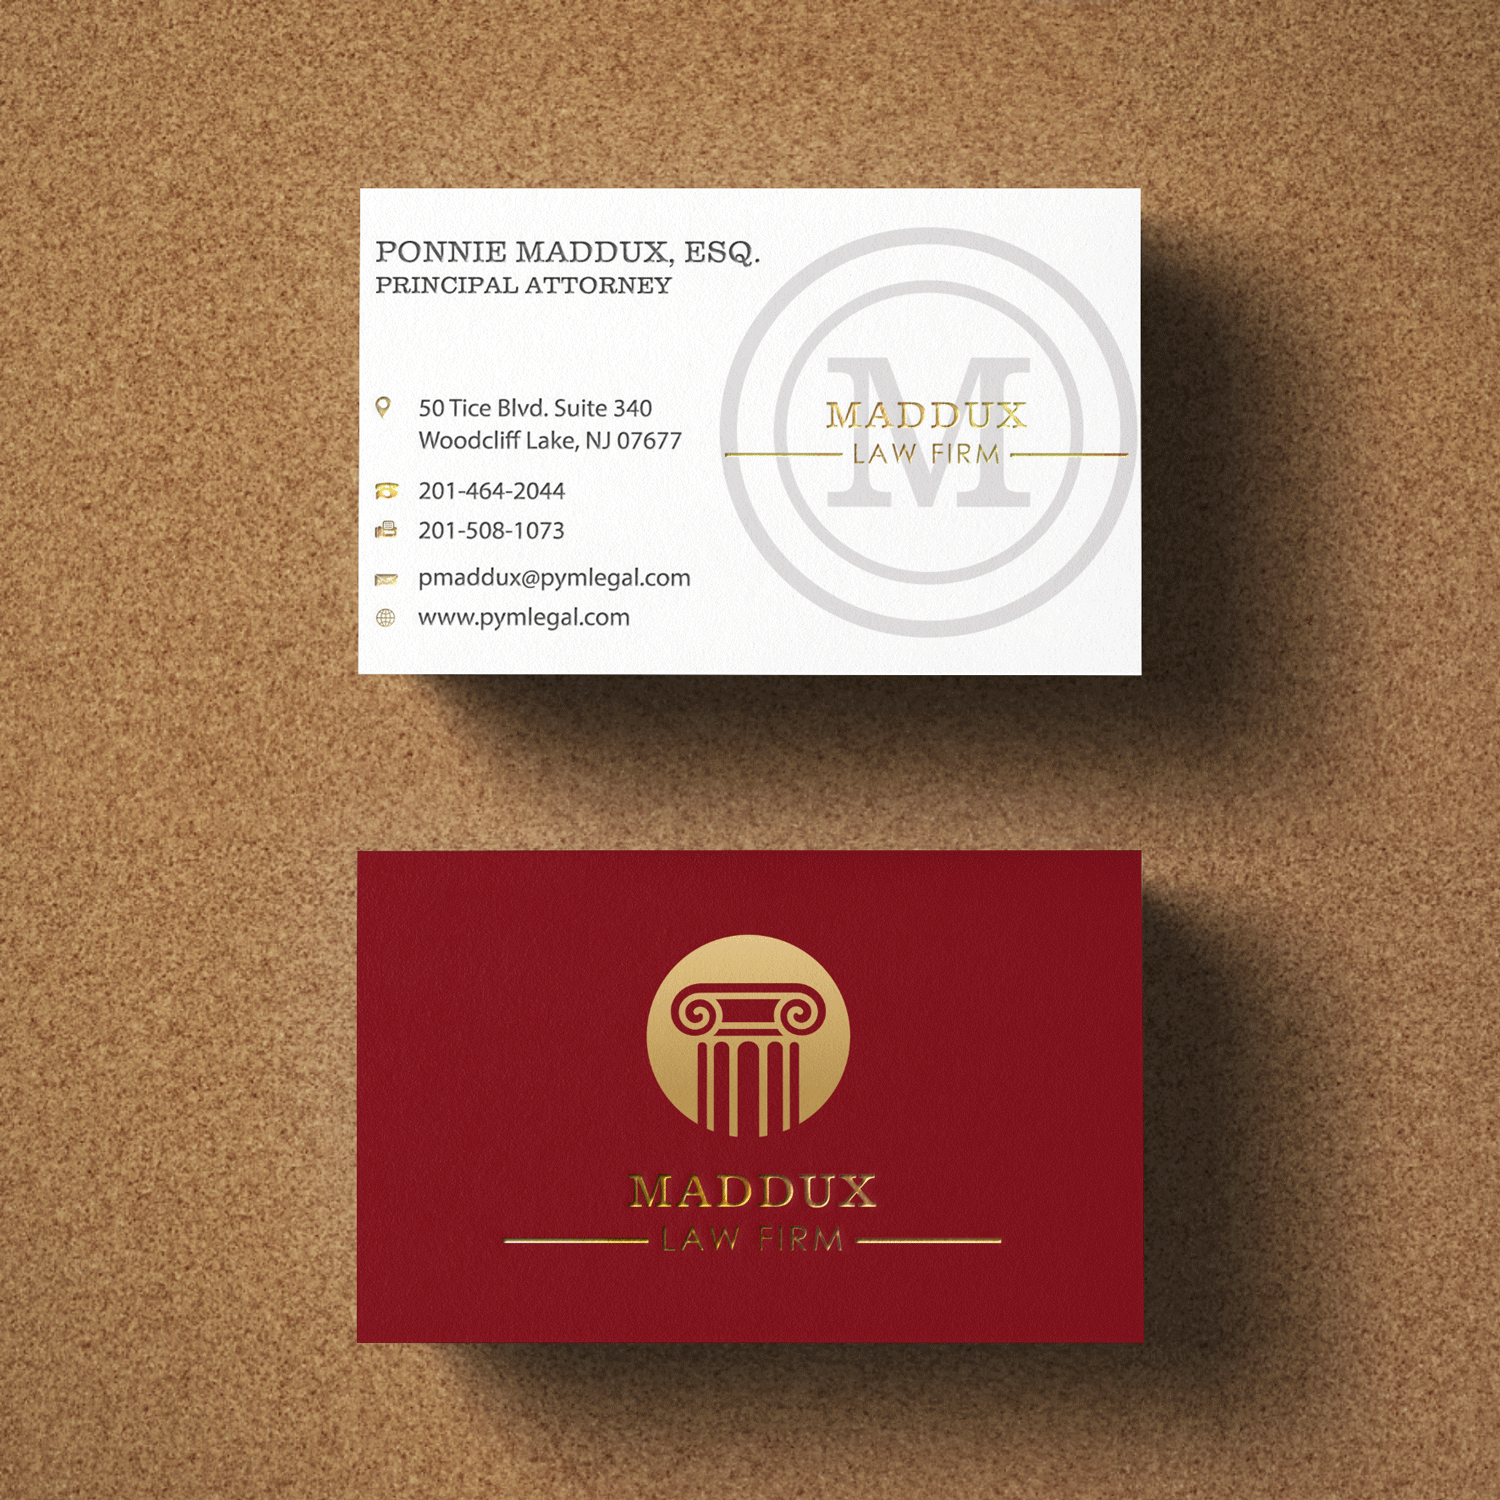 Professional Lawyer Business Cards Image Collections Card Design